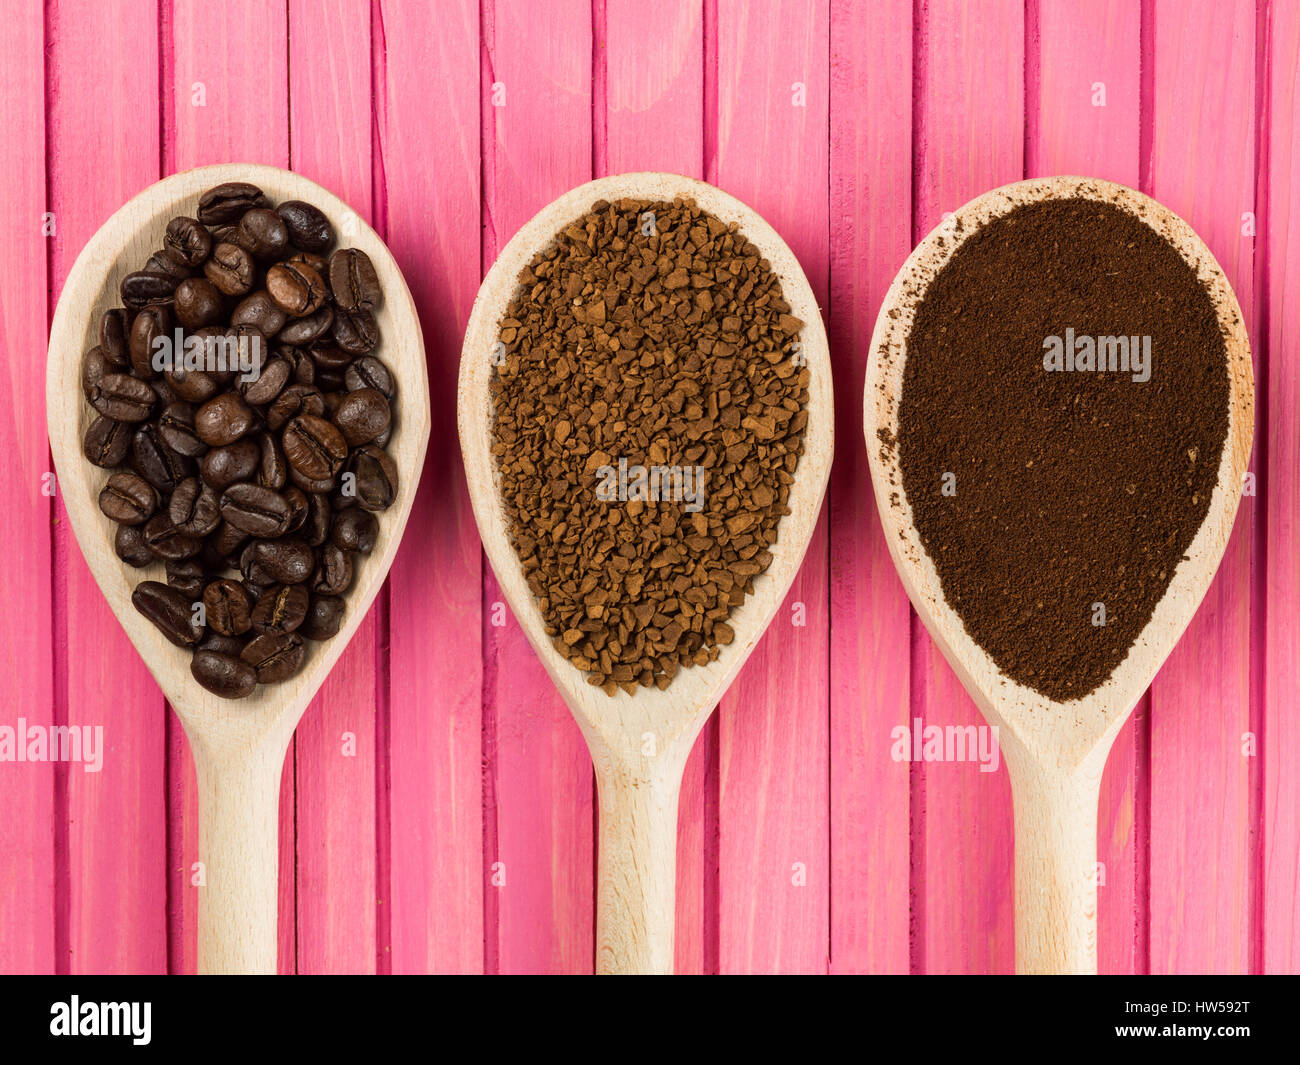 Spoonfuls of Instant Granulated and Roast Coffee Beans Against a Pink Background - Stock Image